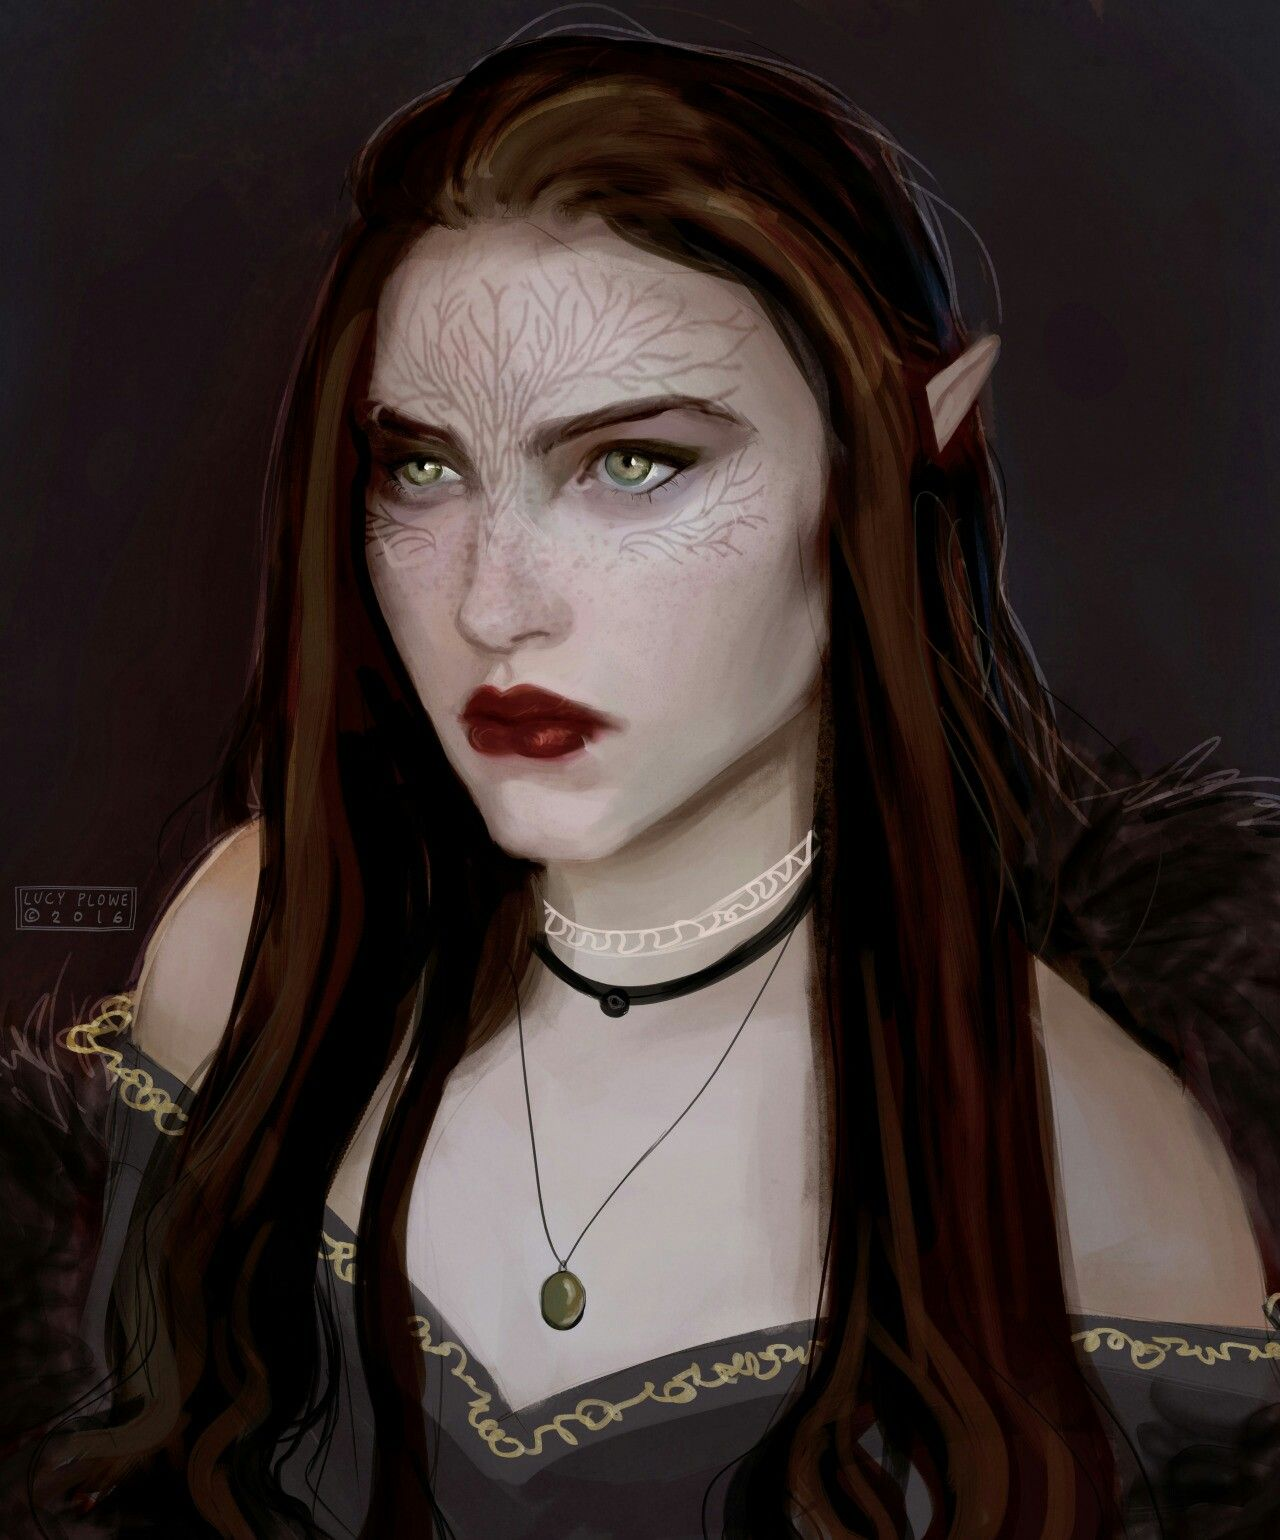 """""""My husband is gone,"""" said Evvie, her voice empty and devoid of its usual warmth and light. Her icy gaze slid to Llywelyn. """"And it is YOUR fault."""""""